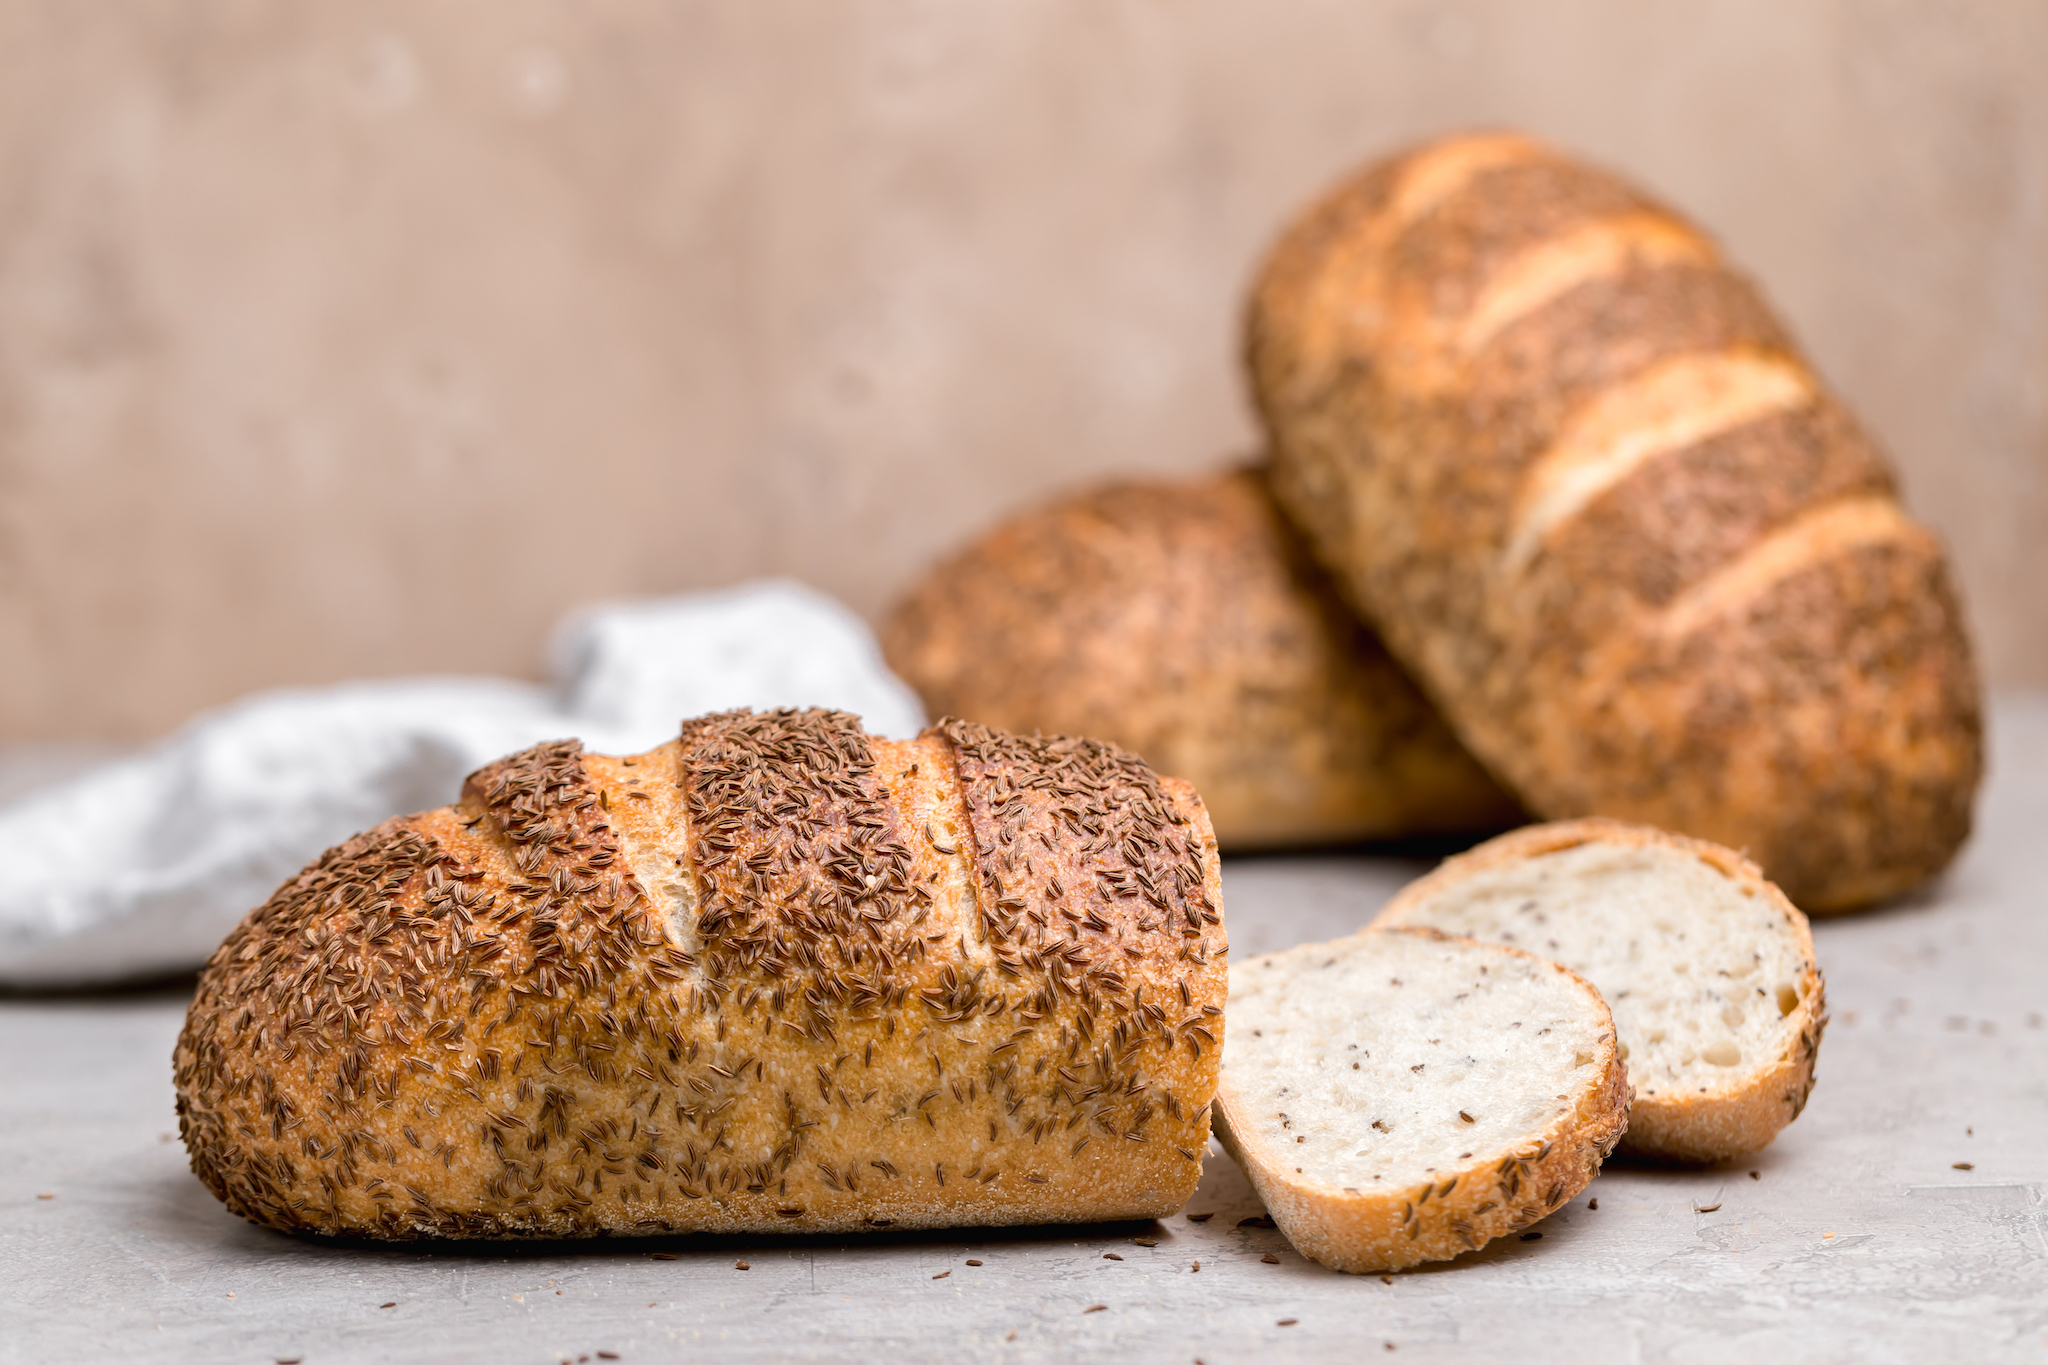 Where to find NYC's best bread delivery right now